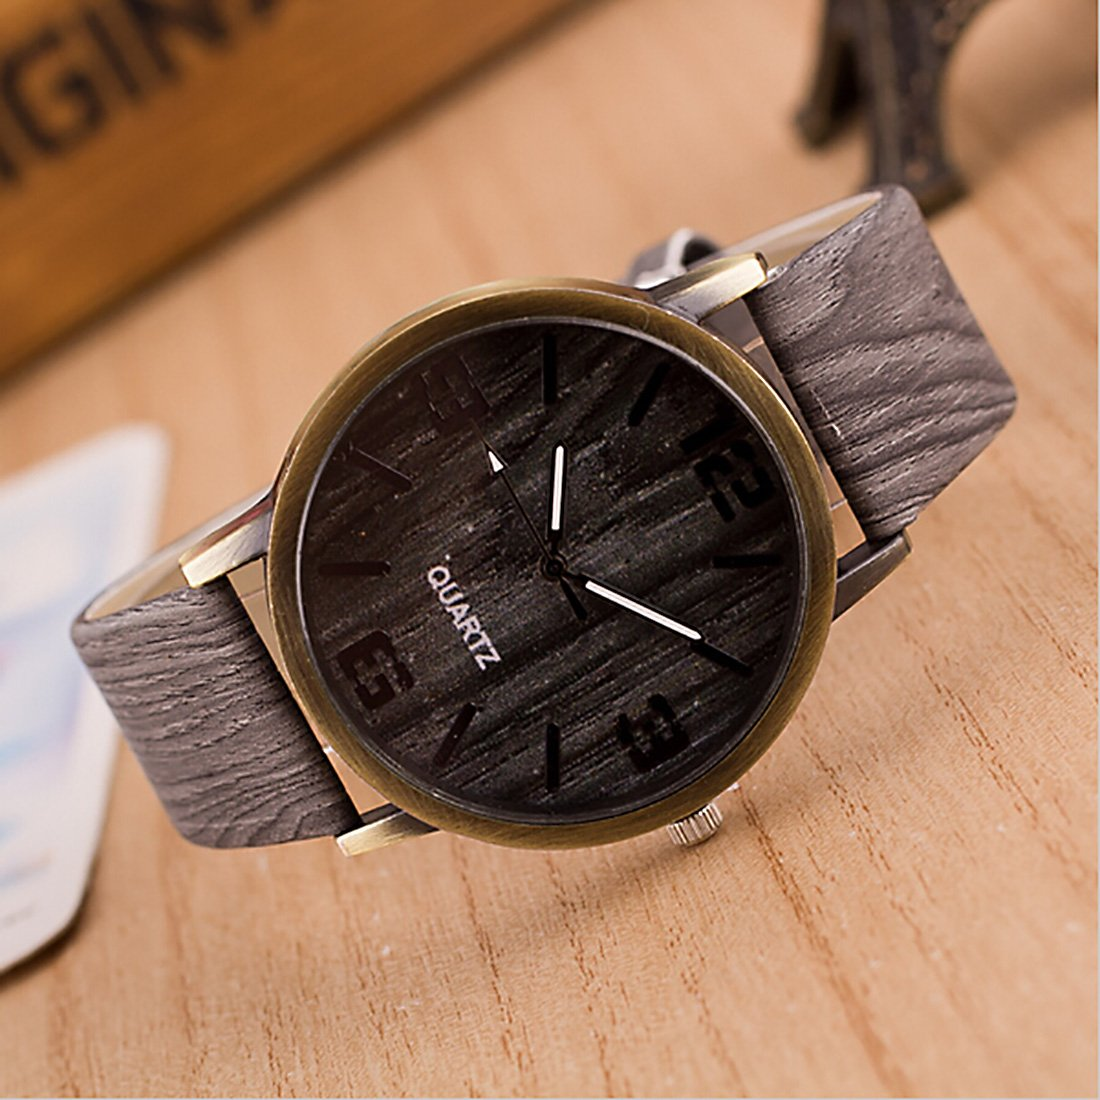 Amazon.com: 2016 Classical Wooden Watch Women Wristwatches Vintage Style Men Dress Watch Pu Leather Quartz Watch 2#: Watches